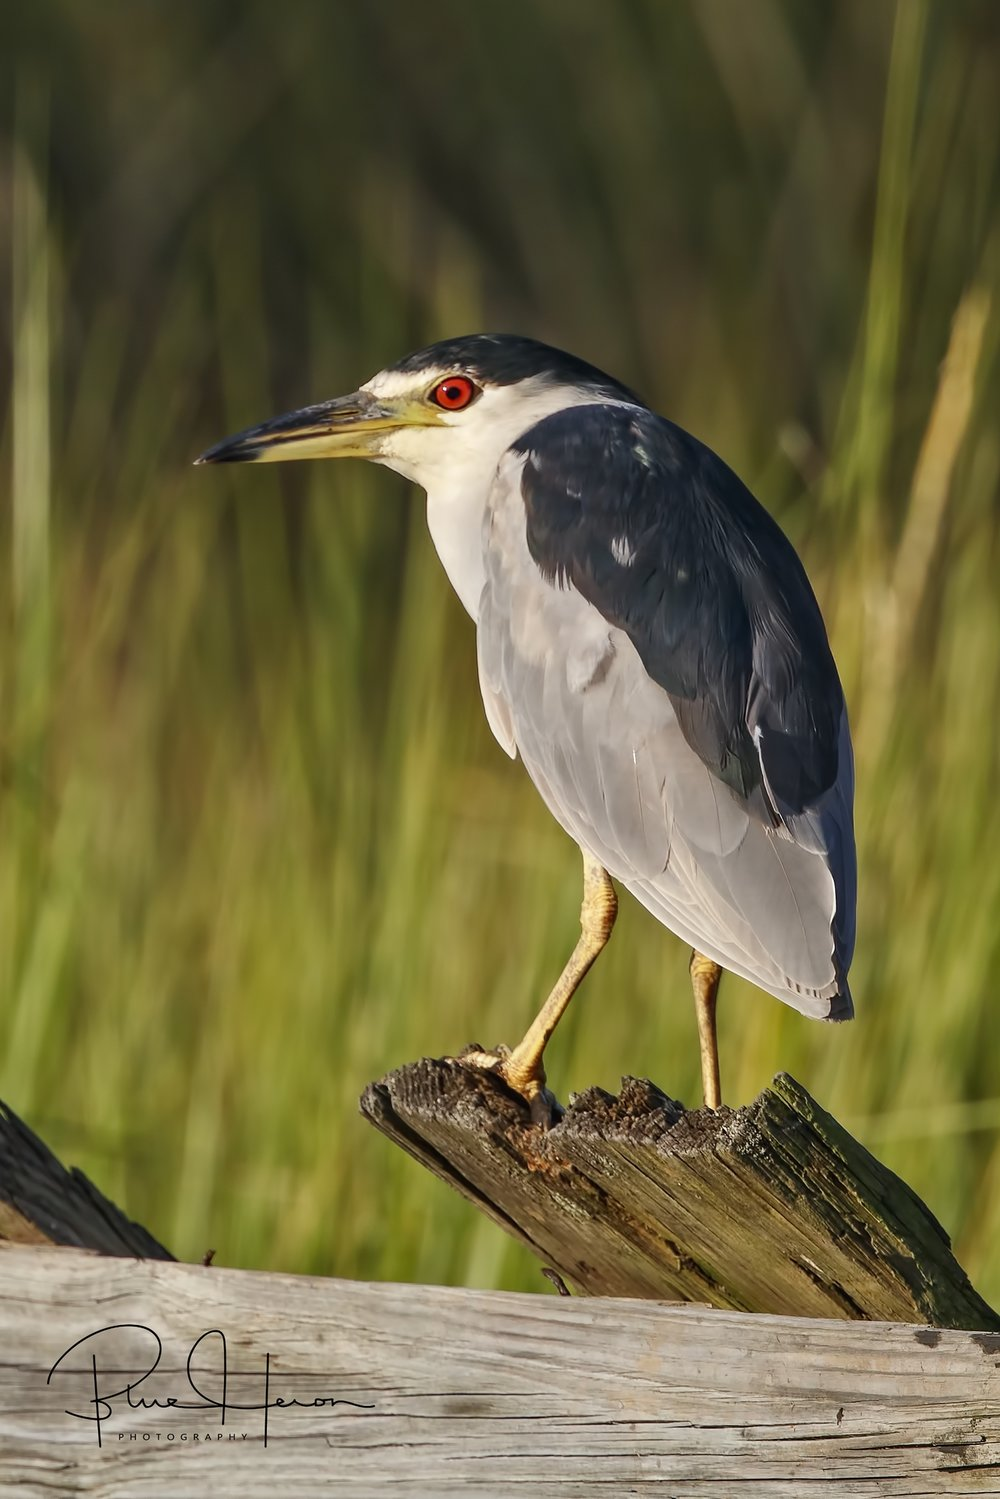 The red-eyed Black-crowned Night Herons are also up early or most likely stayed up all night from the looks of those eyes.